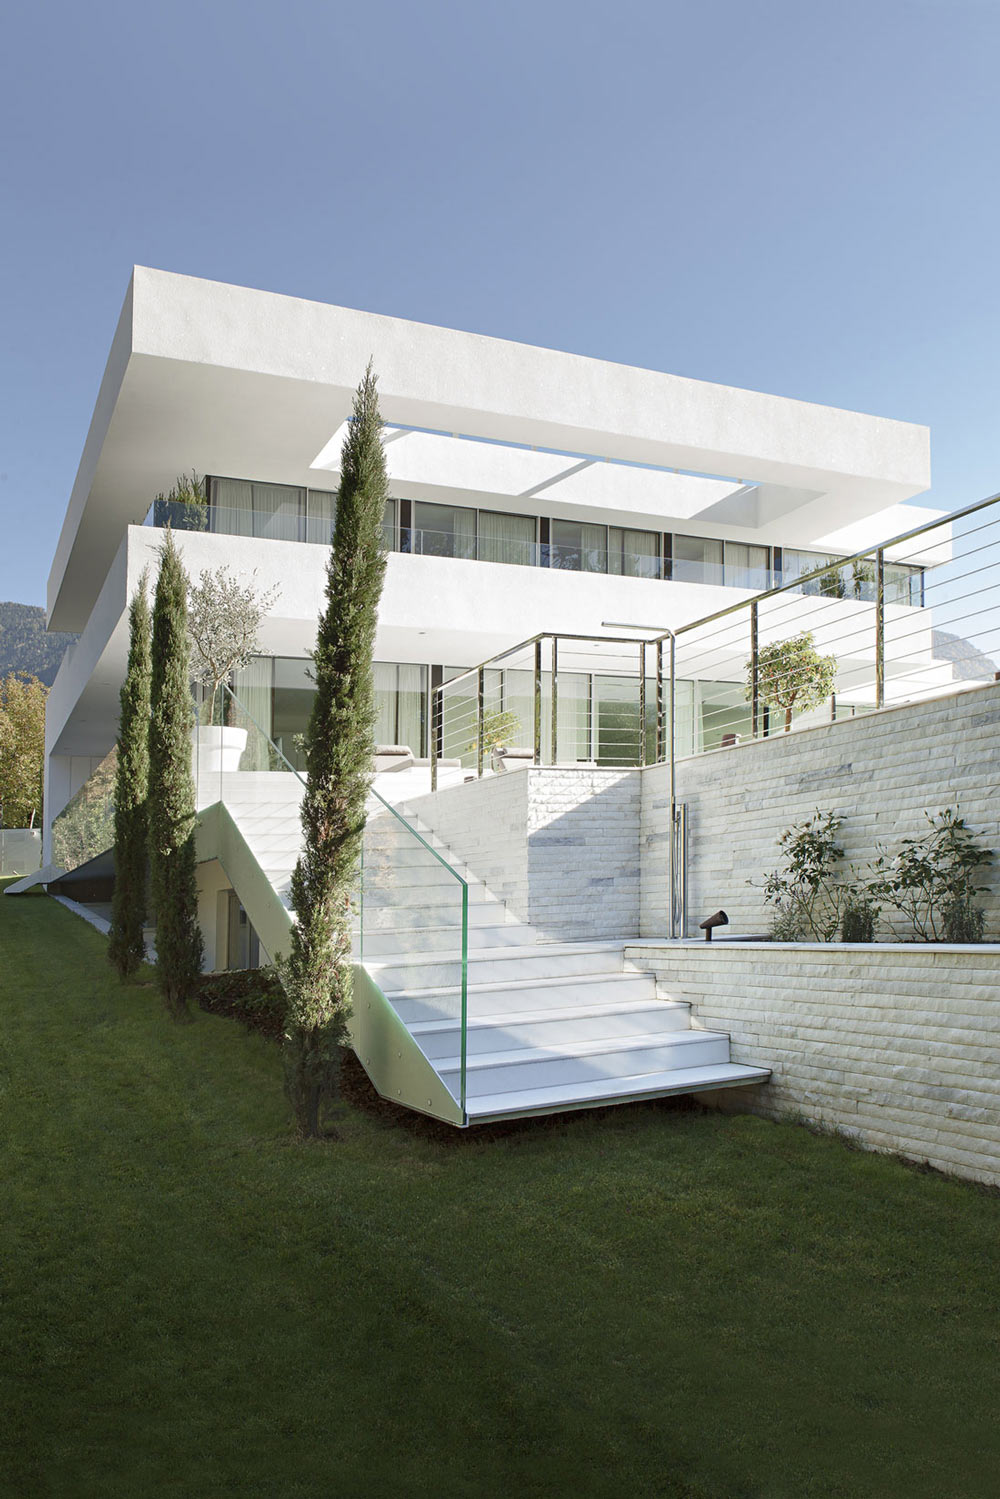 Garden Stairs, Glass & Wood, House M in Meran, Italy by monovolume architecture + design